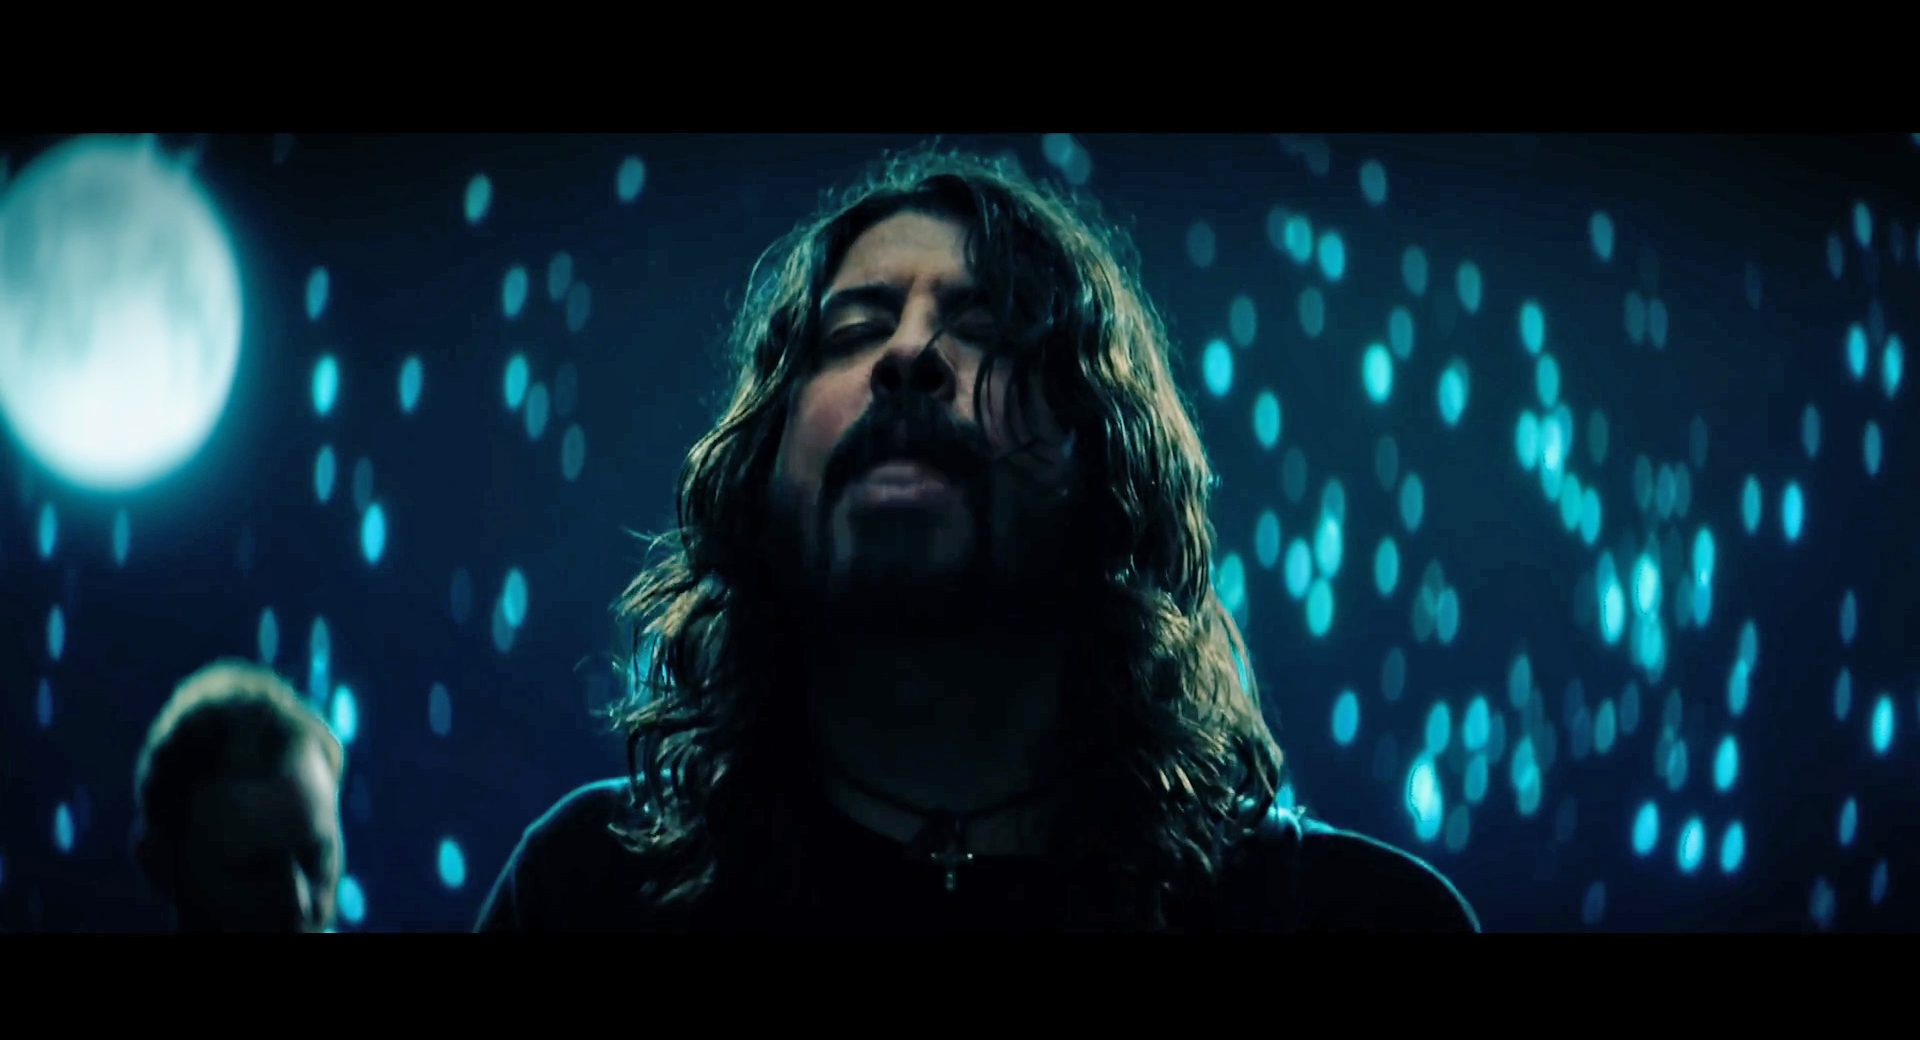 Foo Fighters Get Extraterrestrial in New